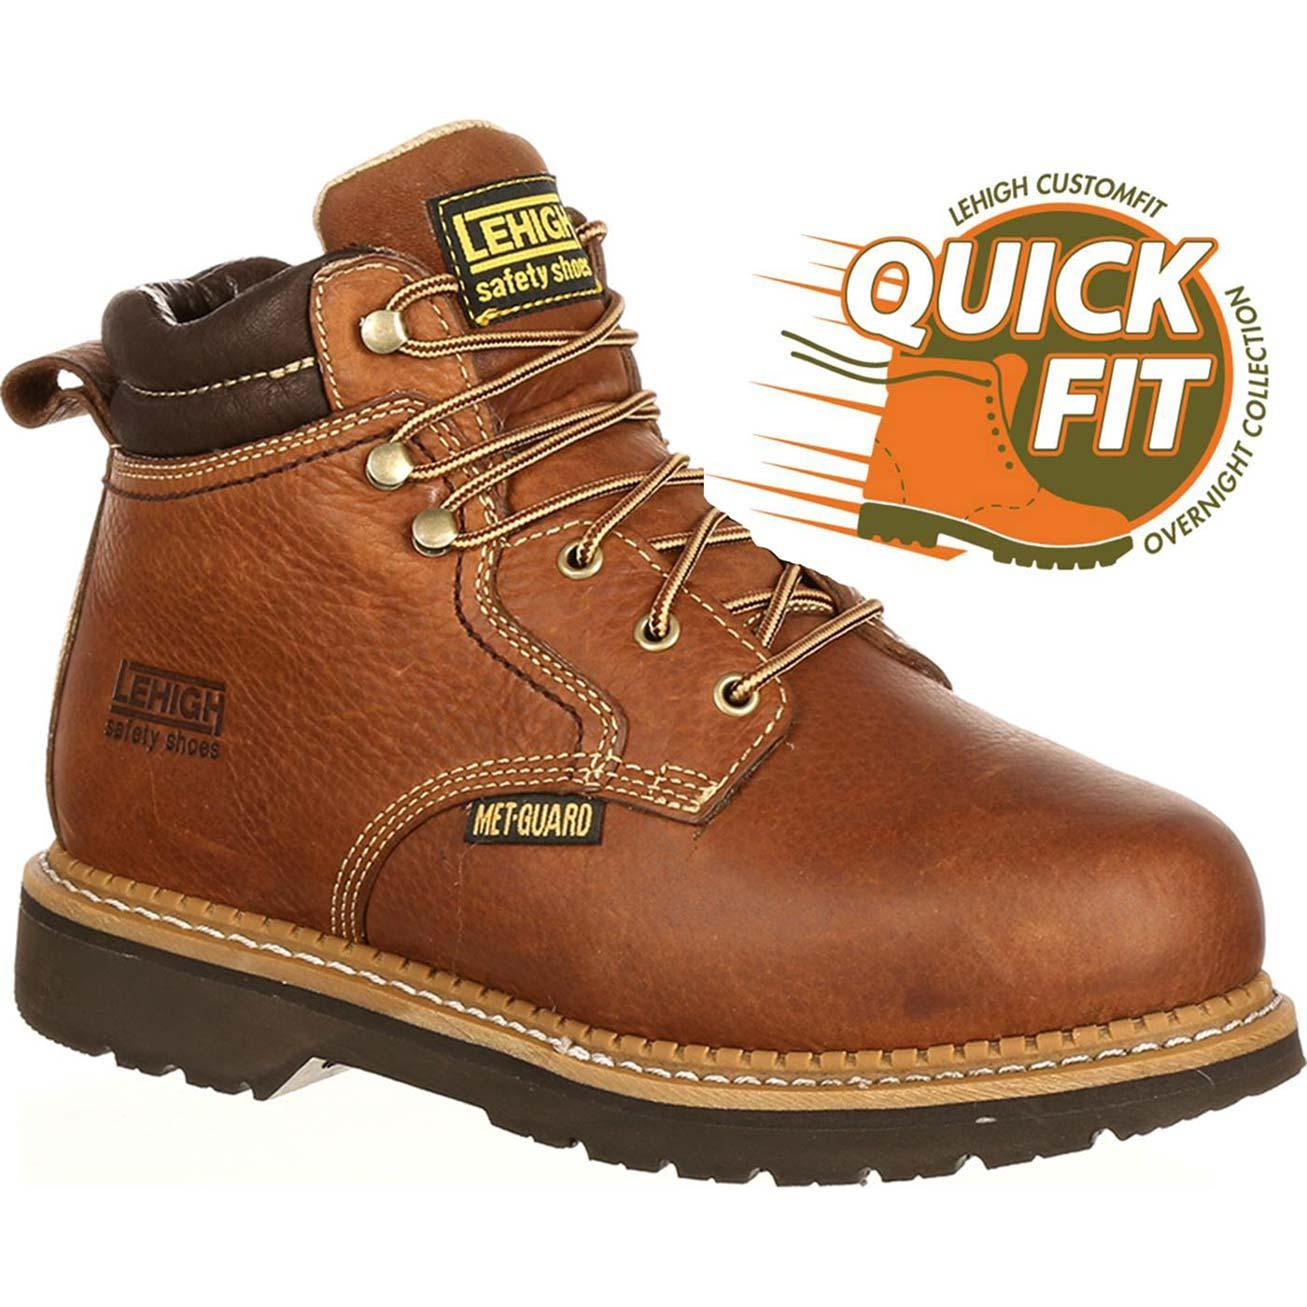 0b97dfe6a569 QUICKFIT Collection  Lehigh Safety Shoes Steel Toe Internal Metatarsal Work  BootQUICKFIT Collection  Lehigh Safety Shoes Steel Toe Internal Metatarsal  Work ...